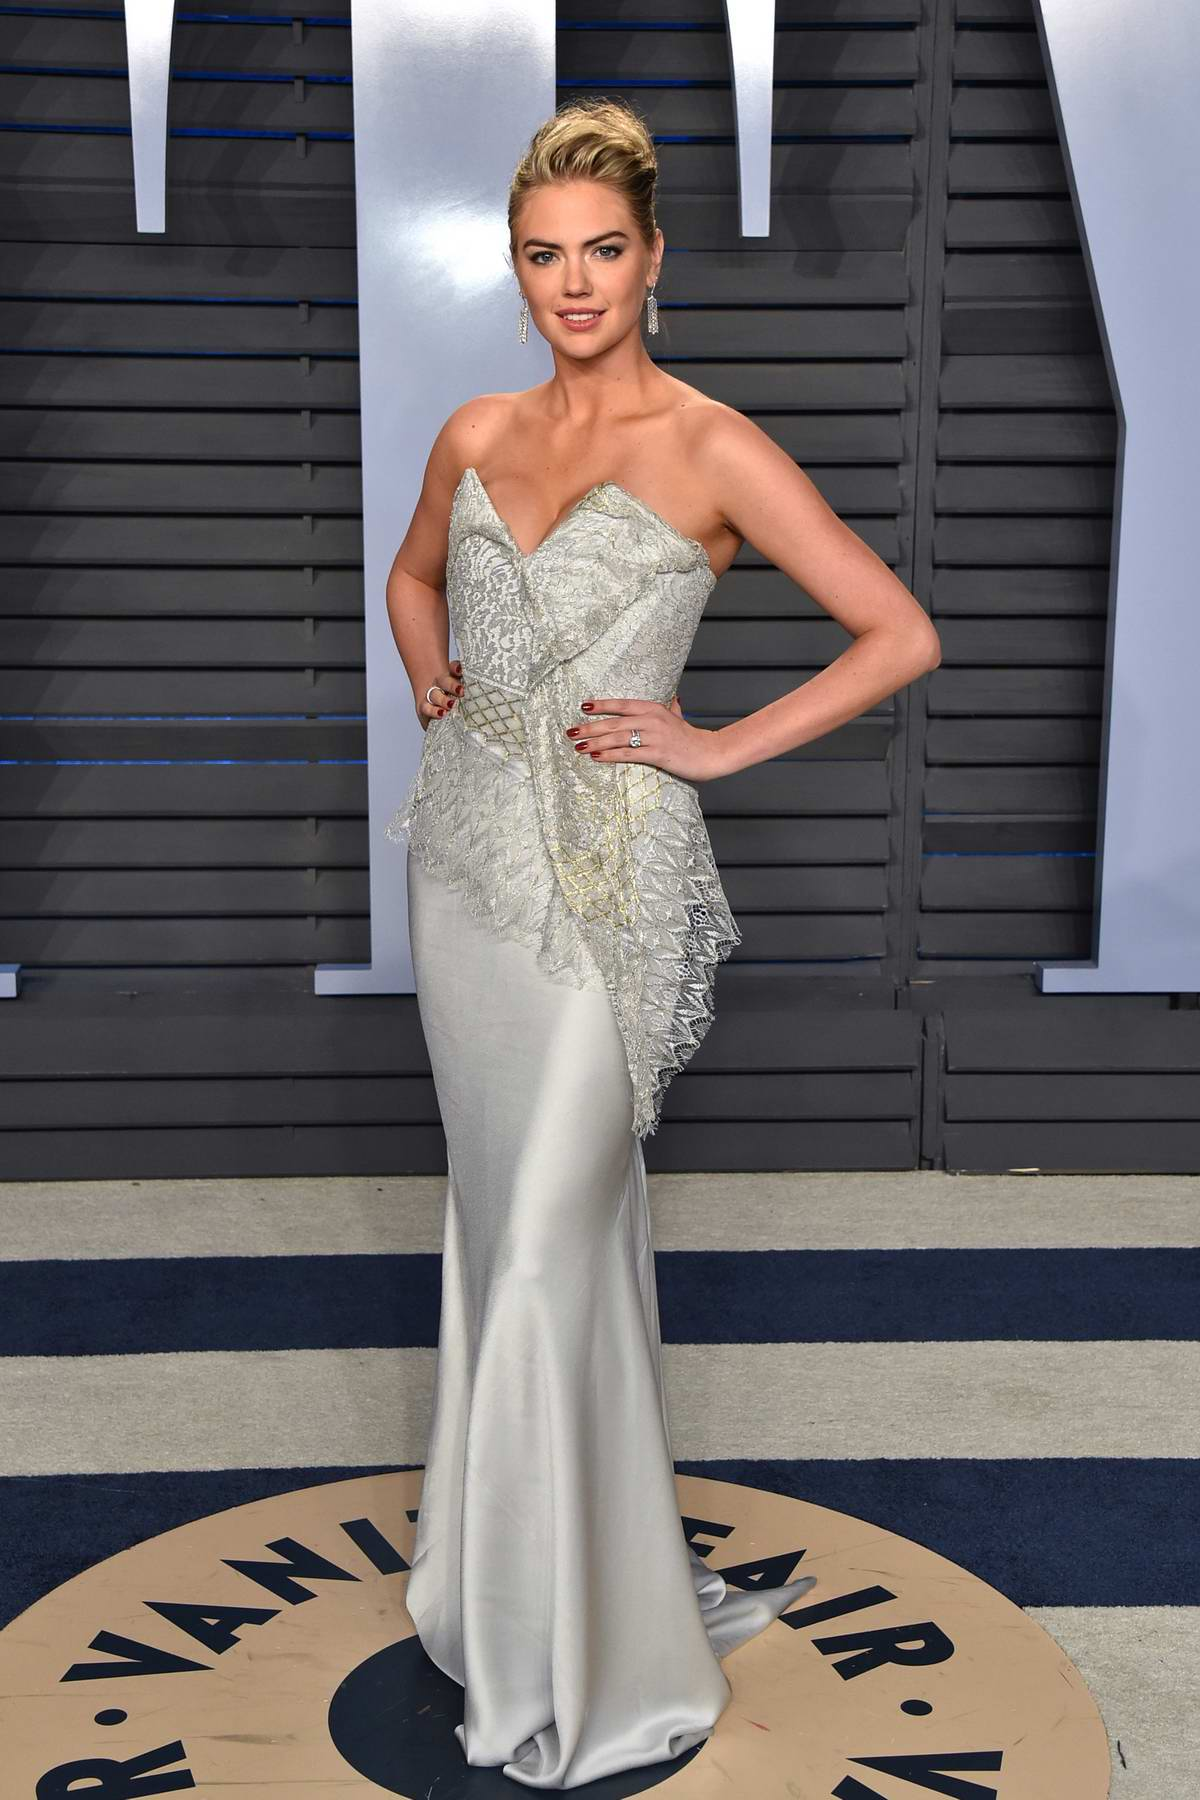 Kate Upton attends 2018 Vanity Fair Oscar Party at the Wallis Annenberg Center for the Performing Arts in Beverly Hills, Los Angeles